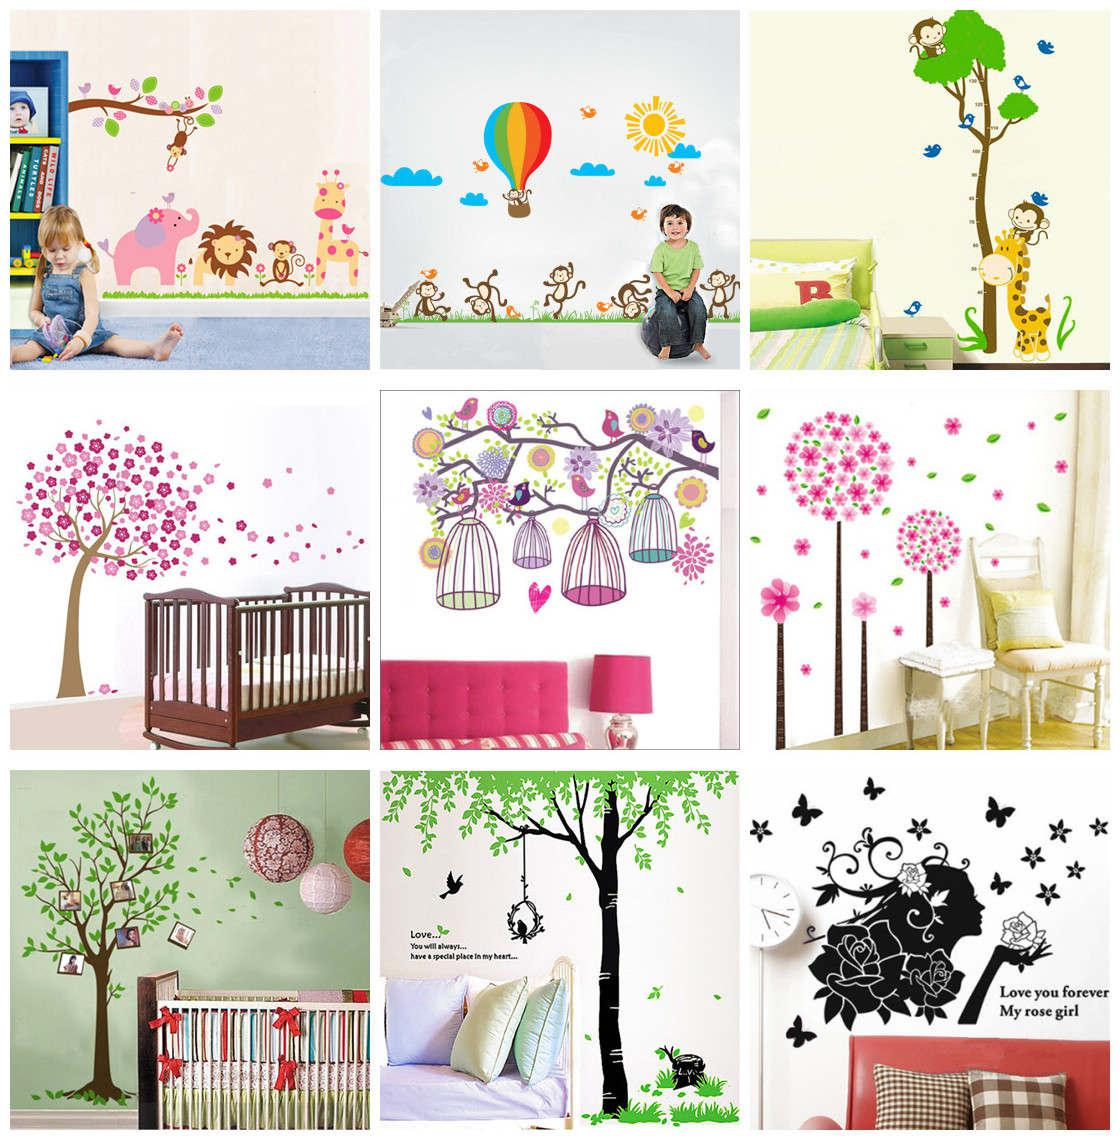 60x90cm Removable Wall Stickers Decals Kids Nursery Wall Decor Mural Art  Home Decoration Wall Decals Cheap Wall Decals Deals From Jeanwill, $4.61|  Dhgate.